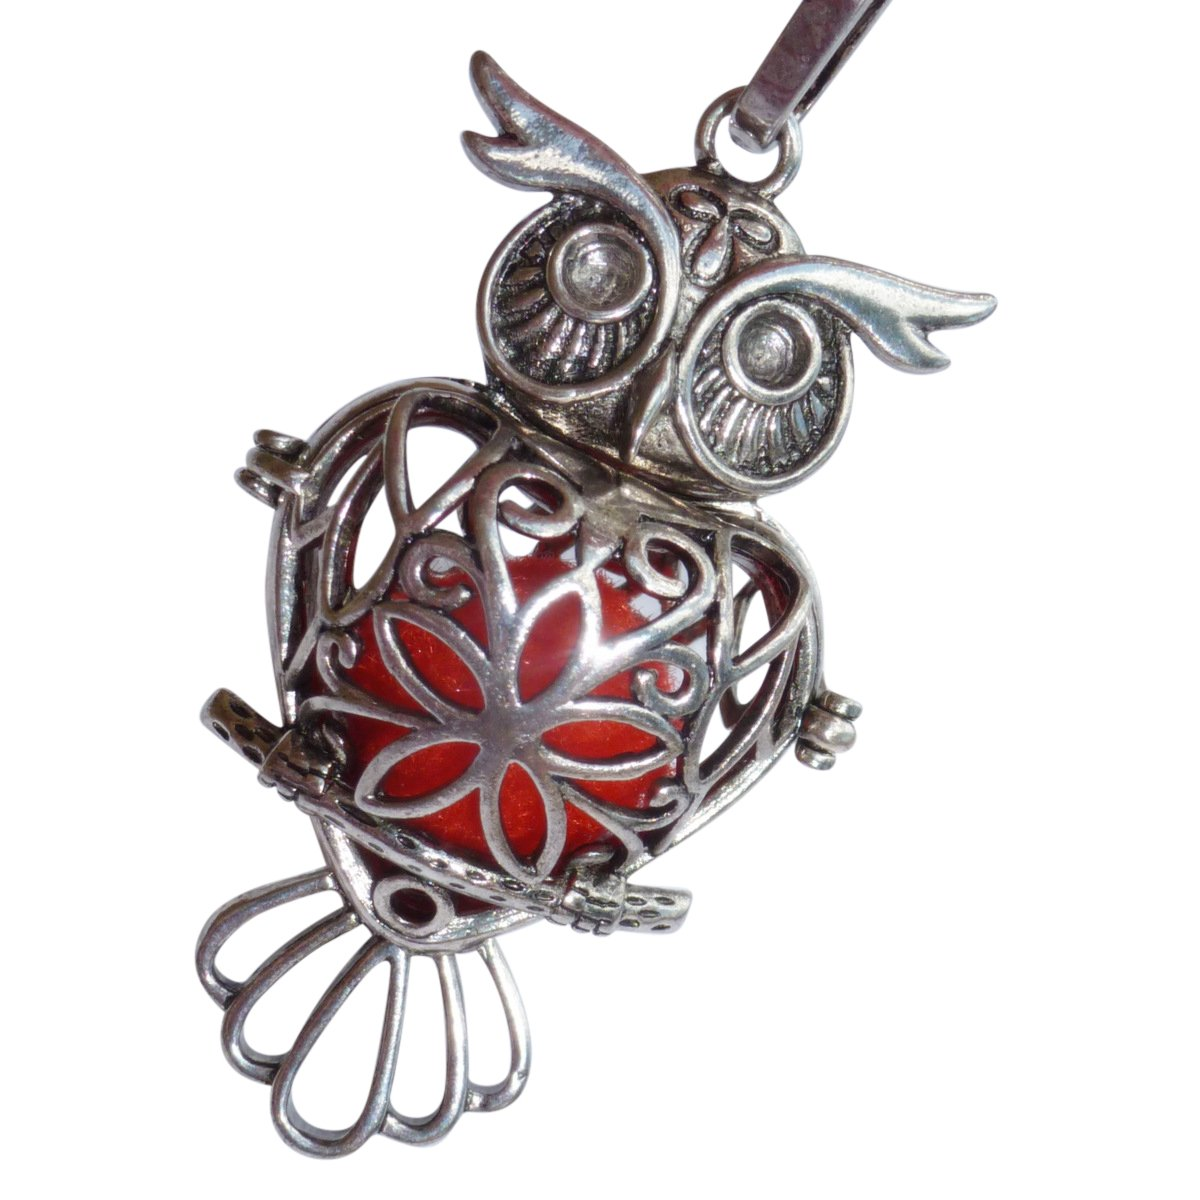 UMBRELLALABORATORY YOur perSOnal STYlish Essential oil necklace Steampunk owl d1 0